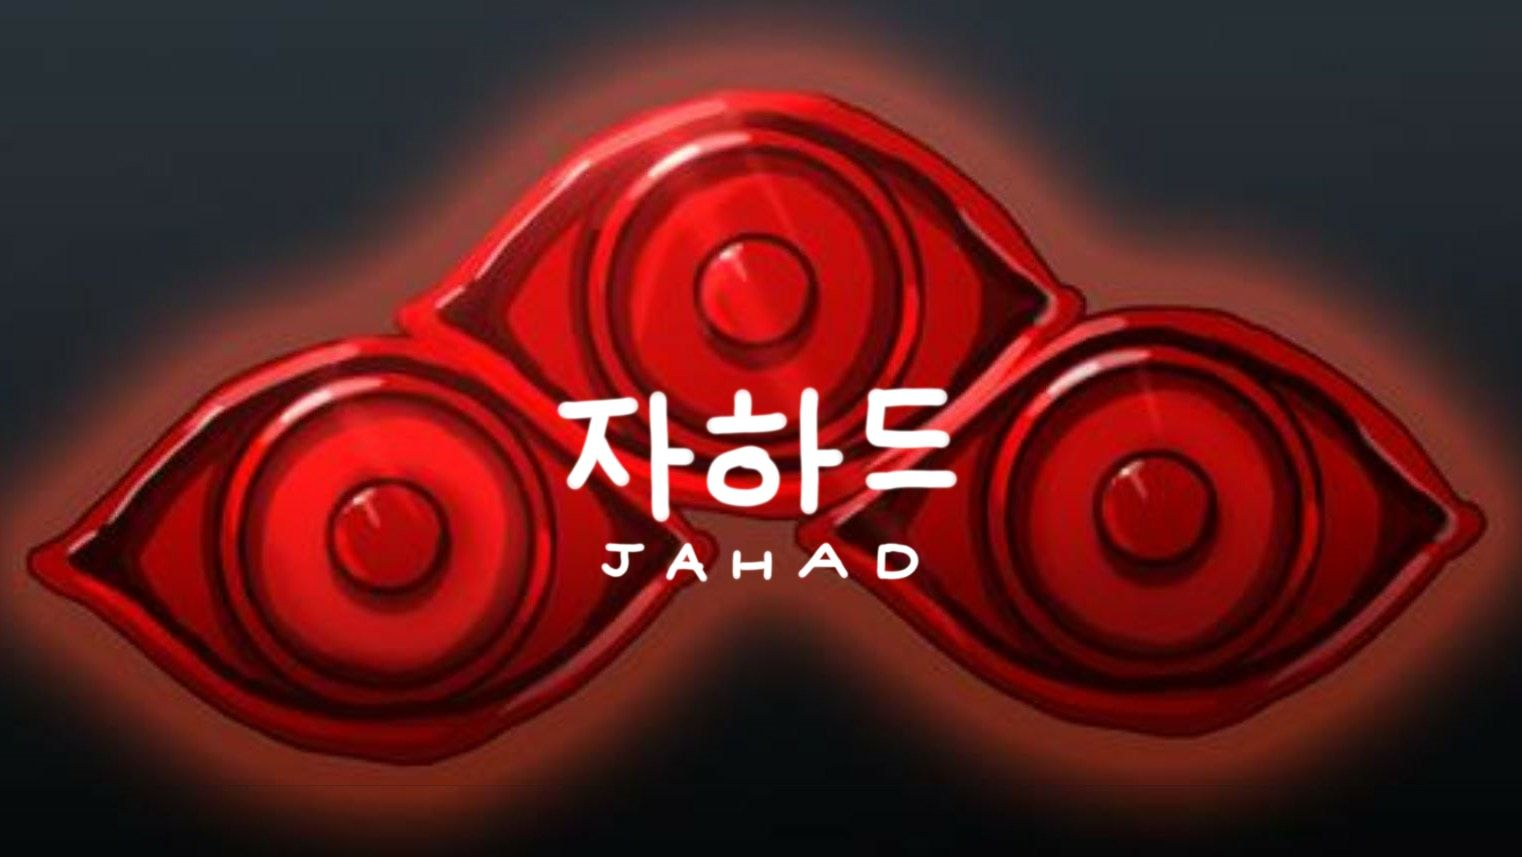 Jahad Zahard King Of The Tower Tower Of God Tower God Art Webtoon